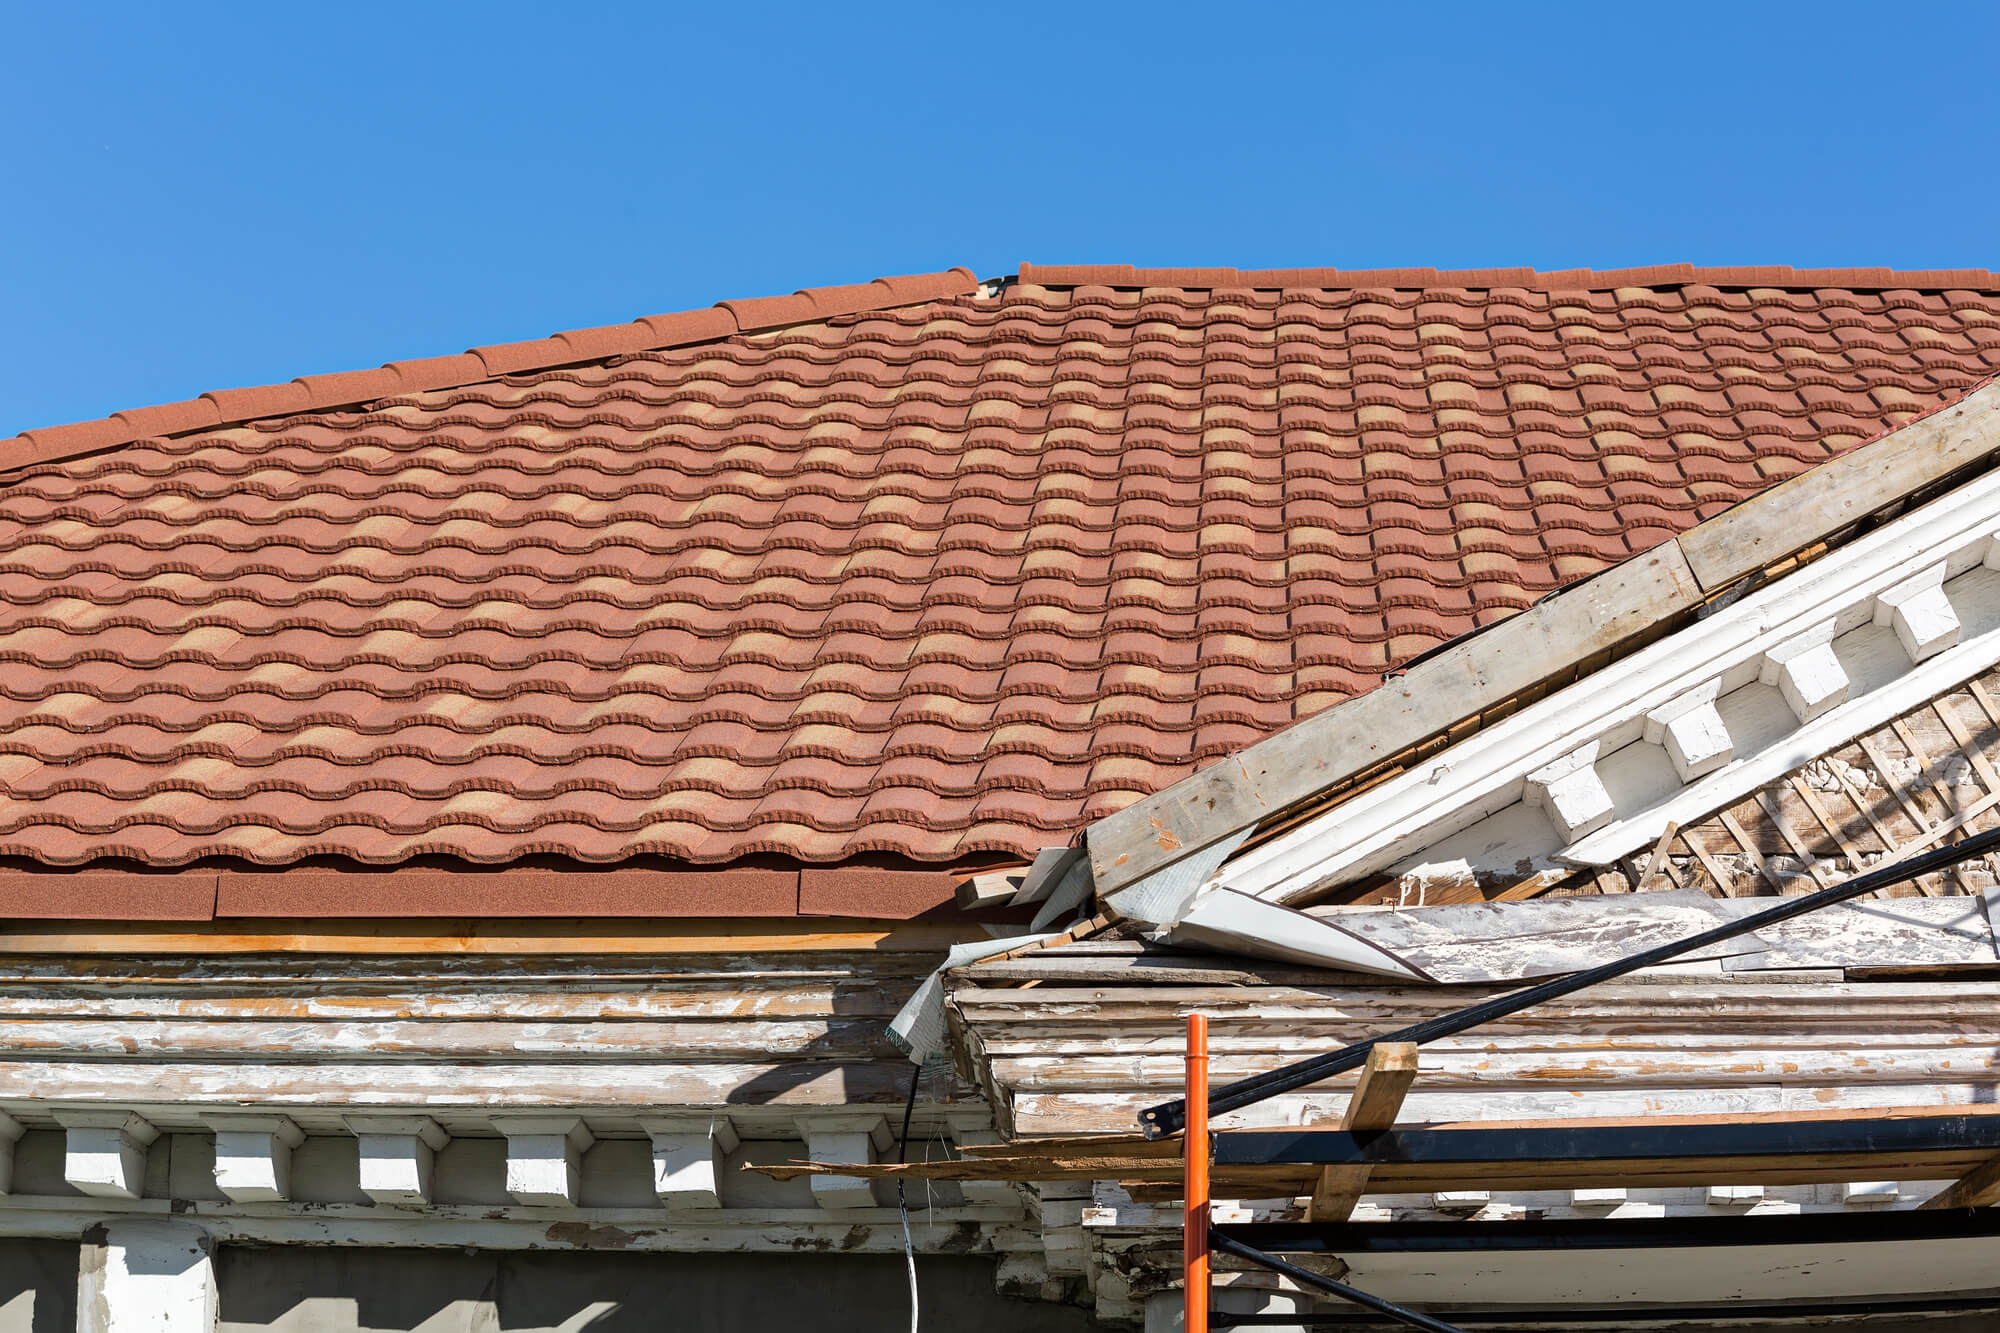 How To Negotiate A Price For Roof Restoration